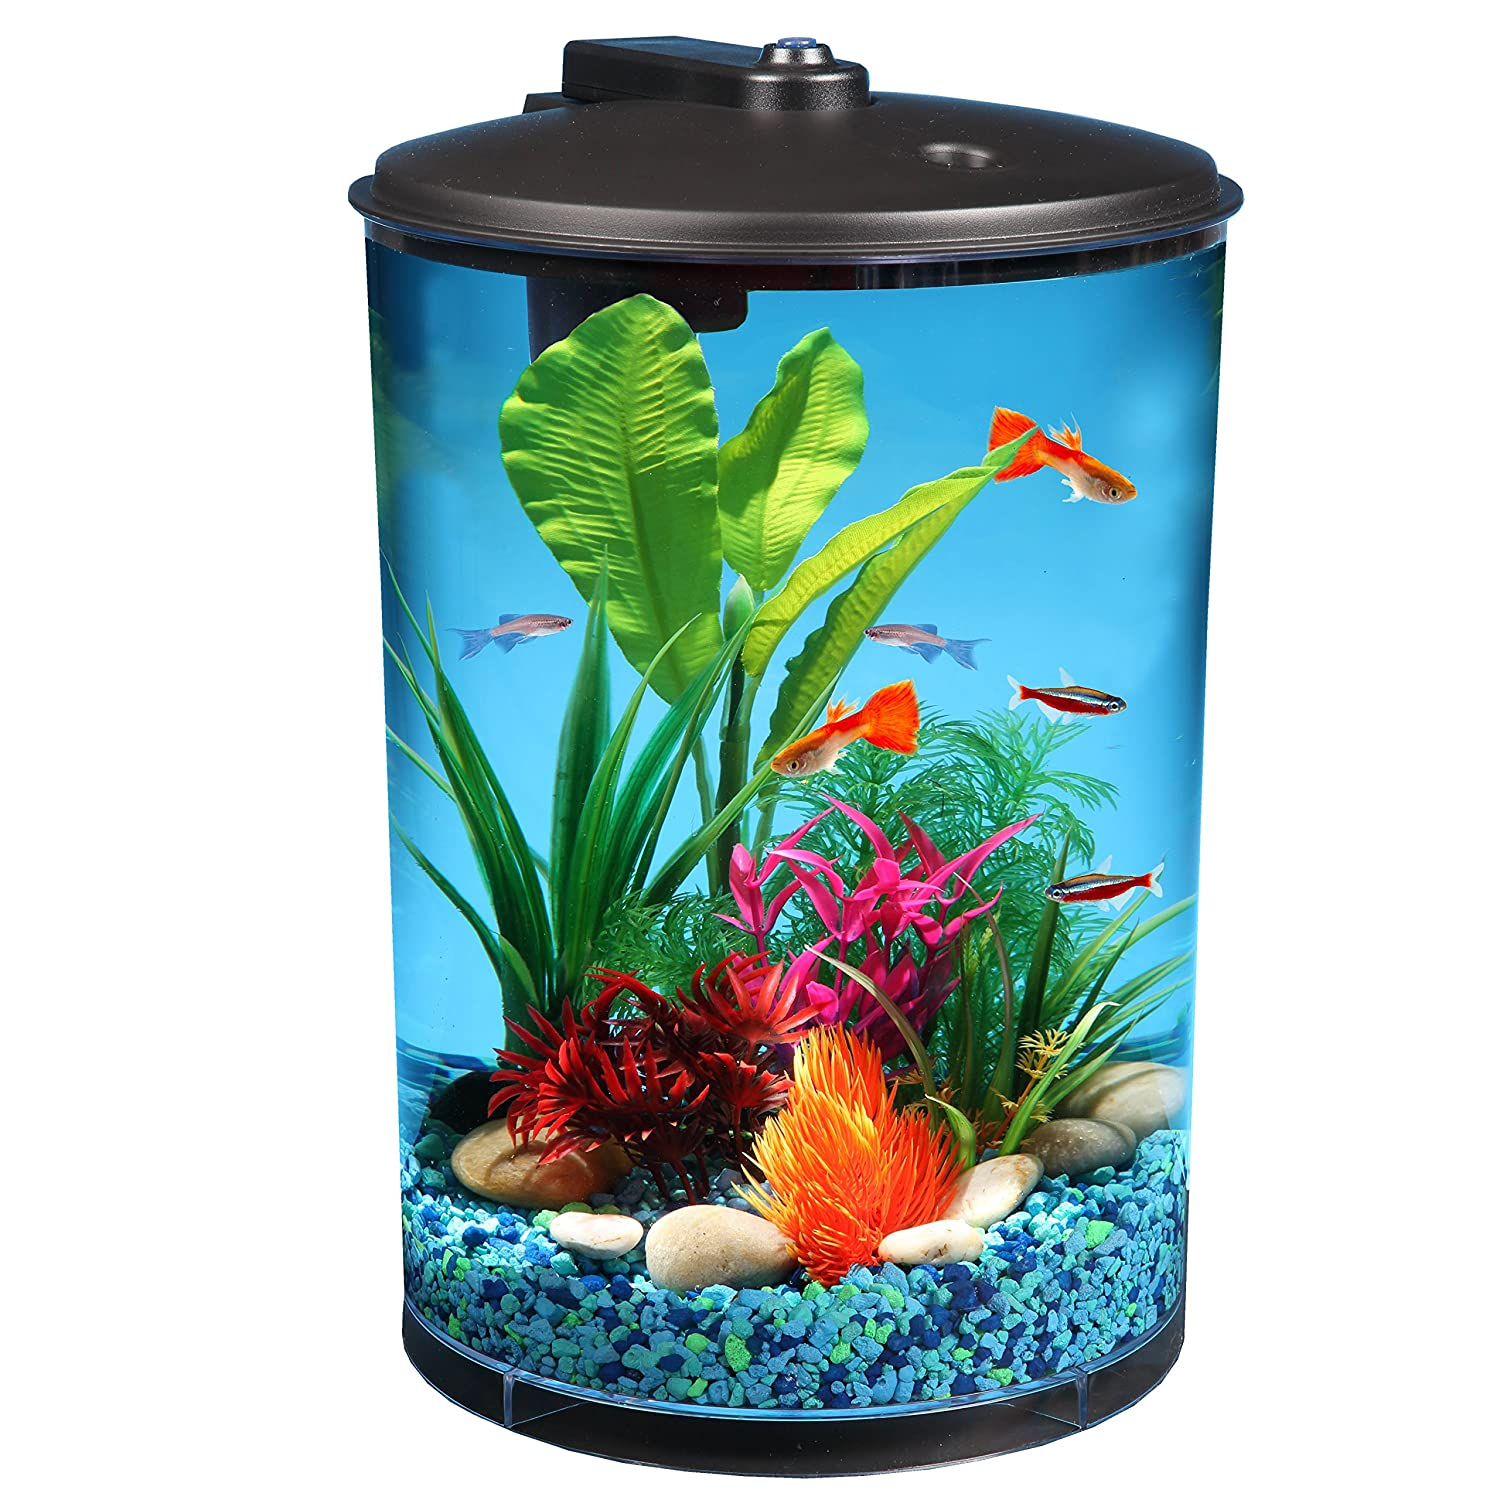 Amazon.com : AquaView 3-Gallon 360 with Power Filter and LED ...